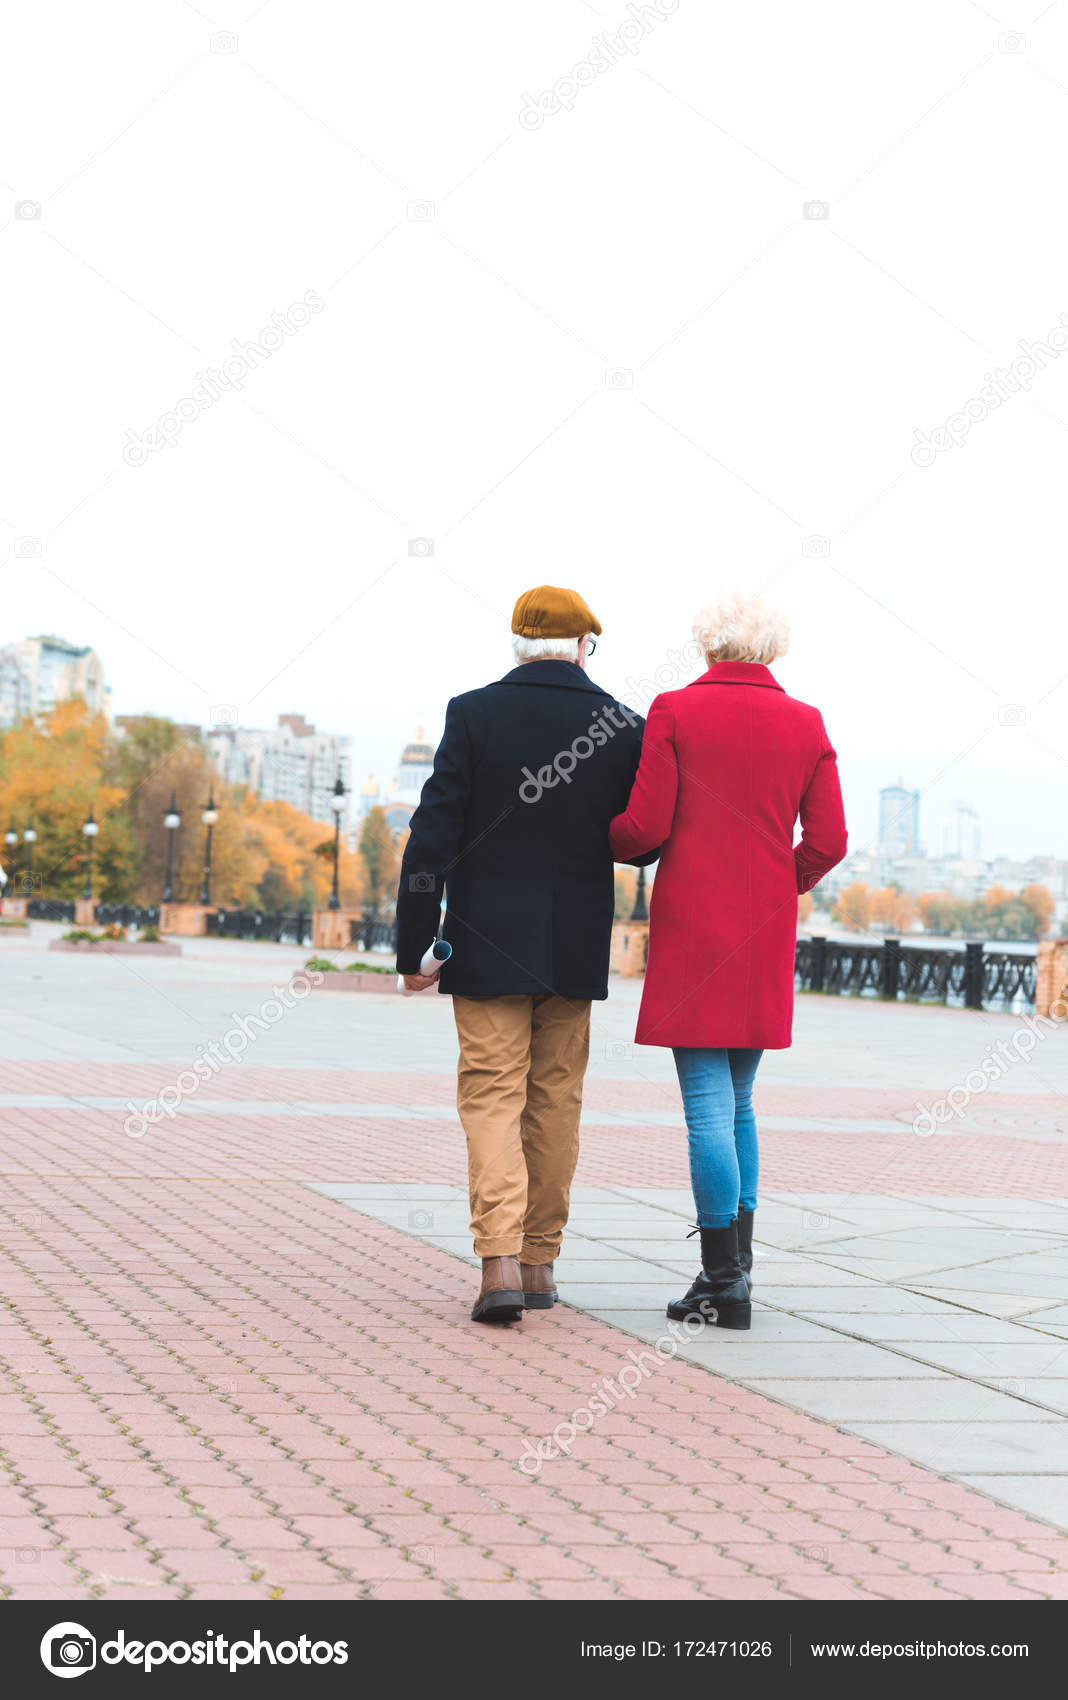 50's And Above Senior Dating Online Website